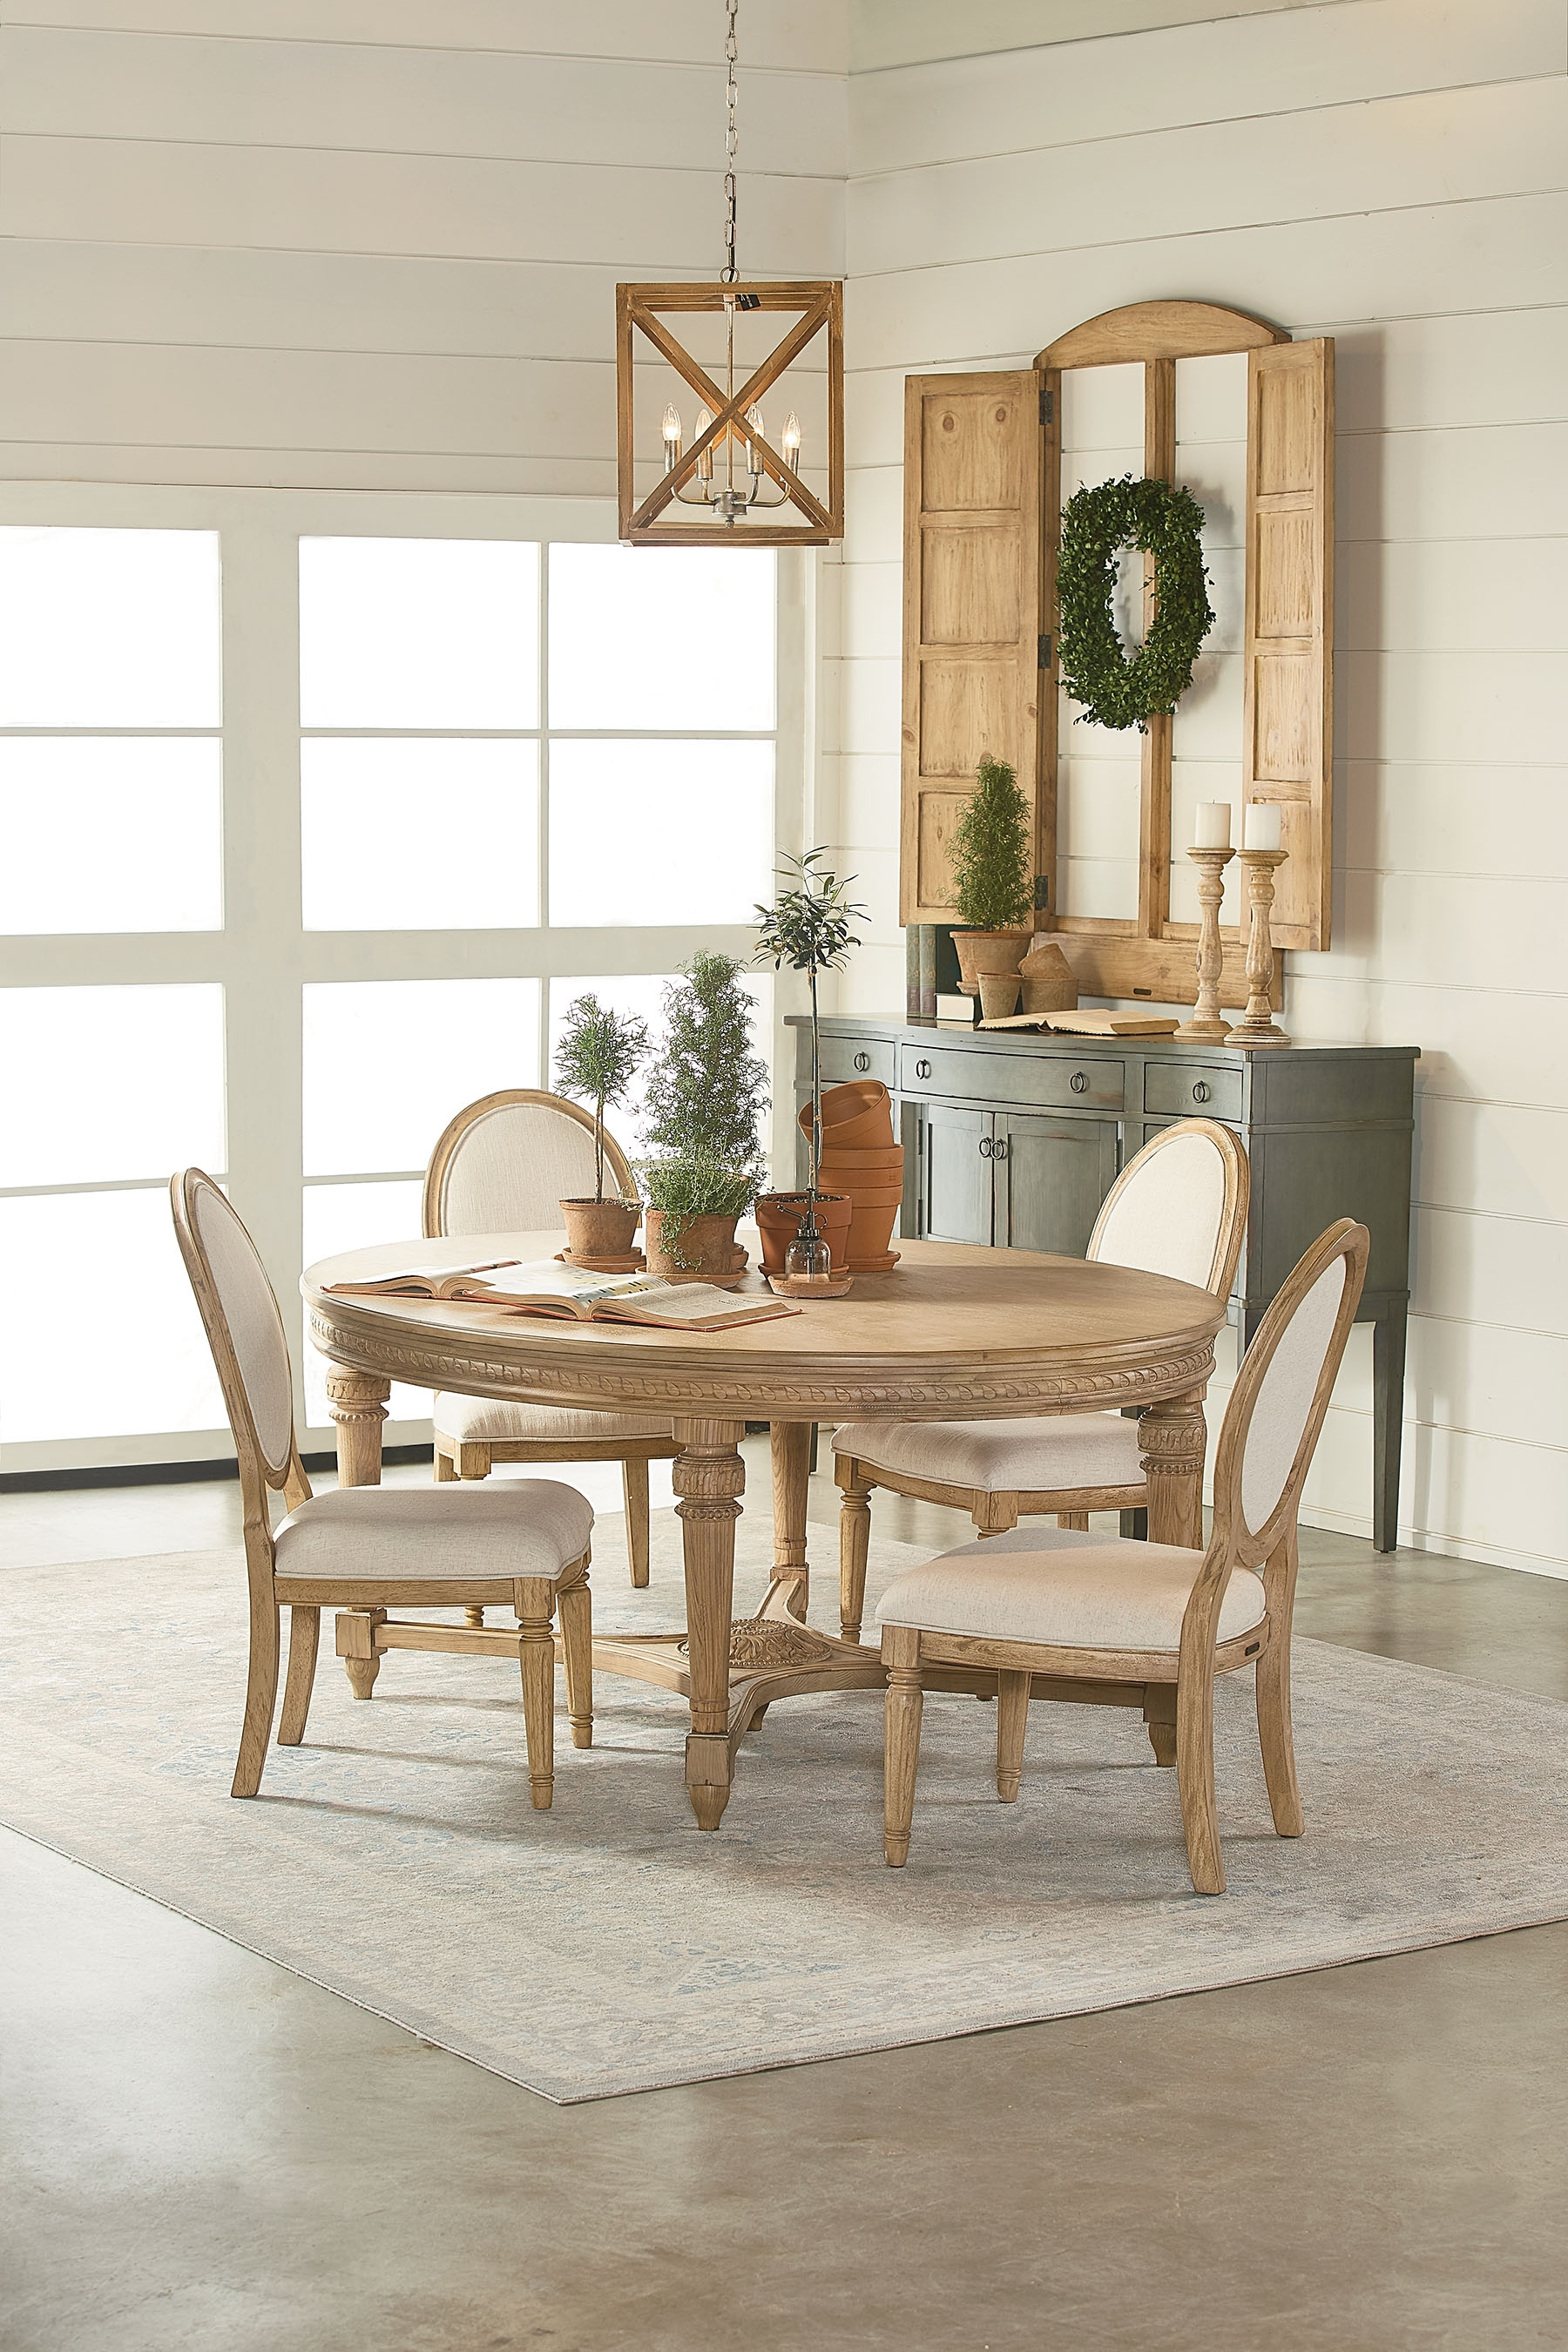 English Country Oval Dining Table - Magnolia Home in Best and Newest Magnolia Home English Country Oval Dining Tables